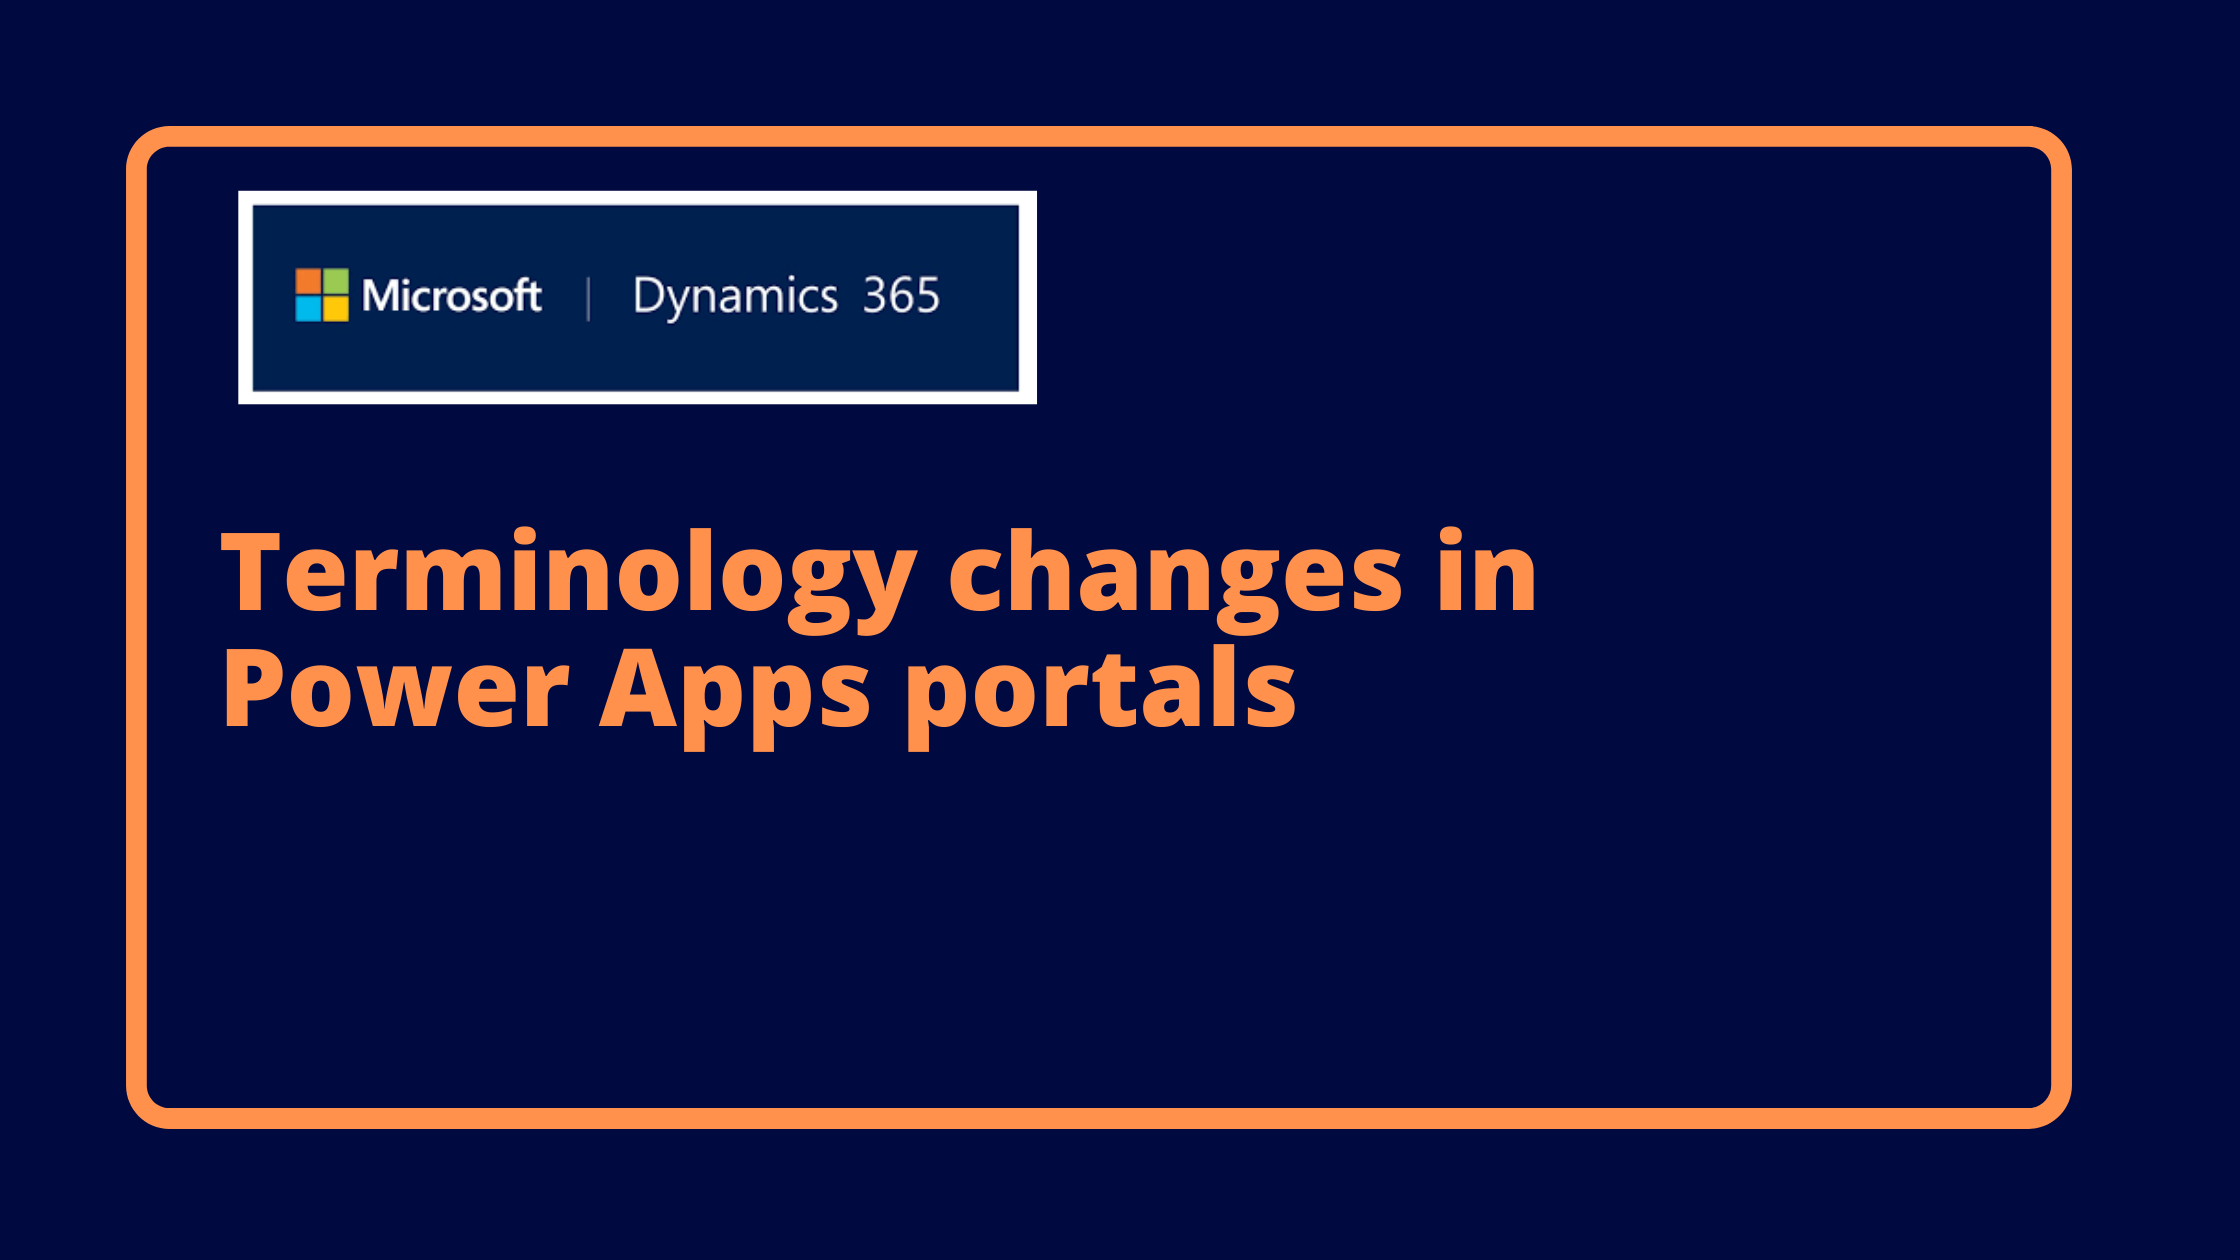 Terminology changes in Power Apps portals